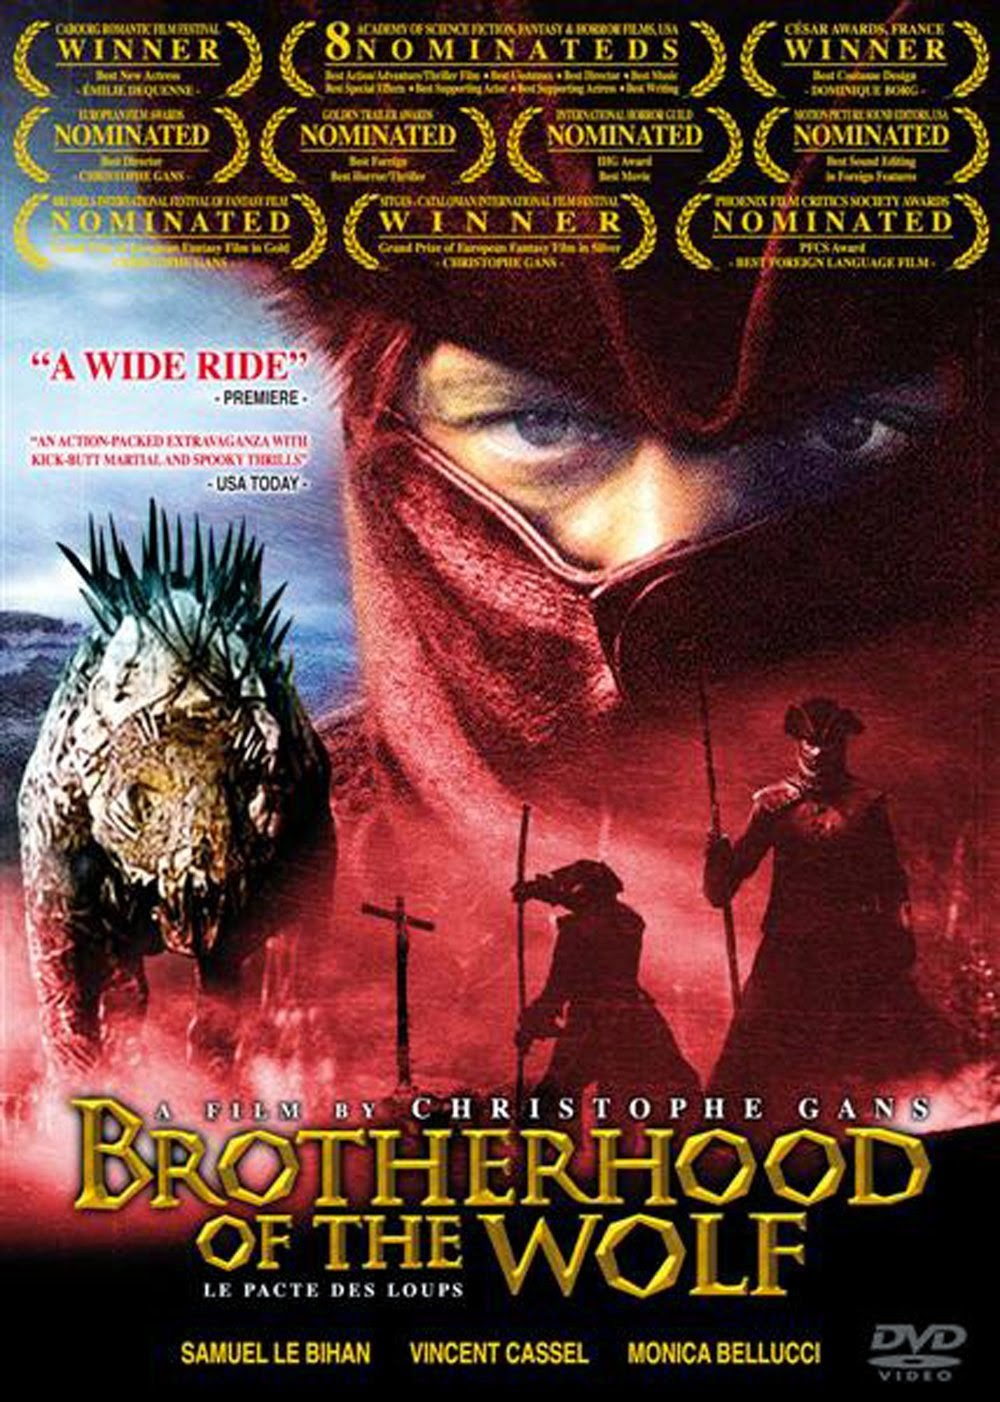 Brotherhood of the Wolf 2001 DVDRip ταινιες online seires oipeirates greek subs